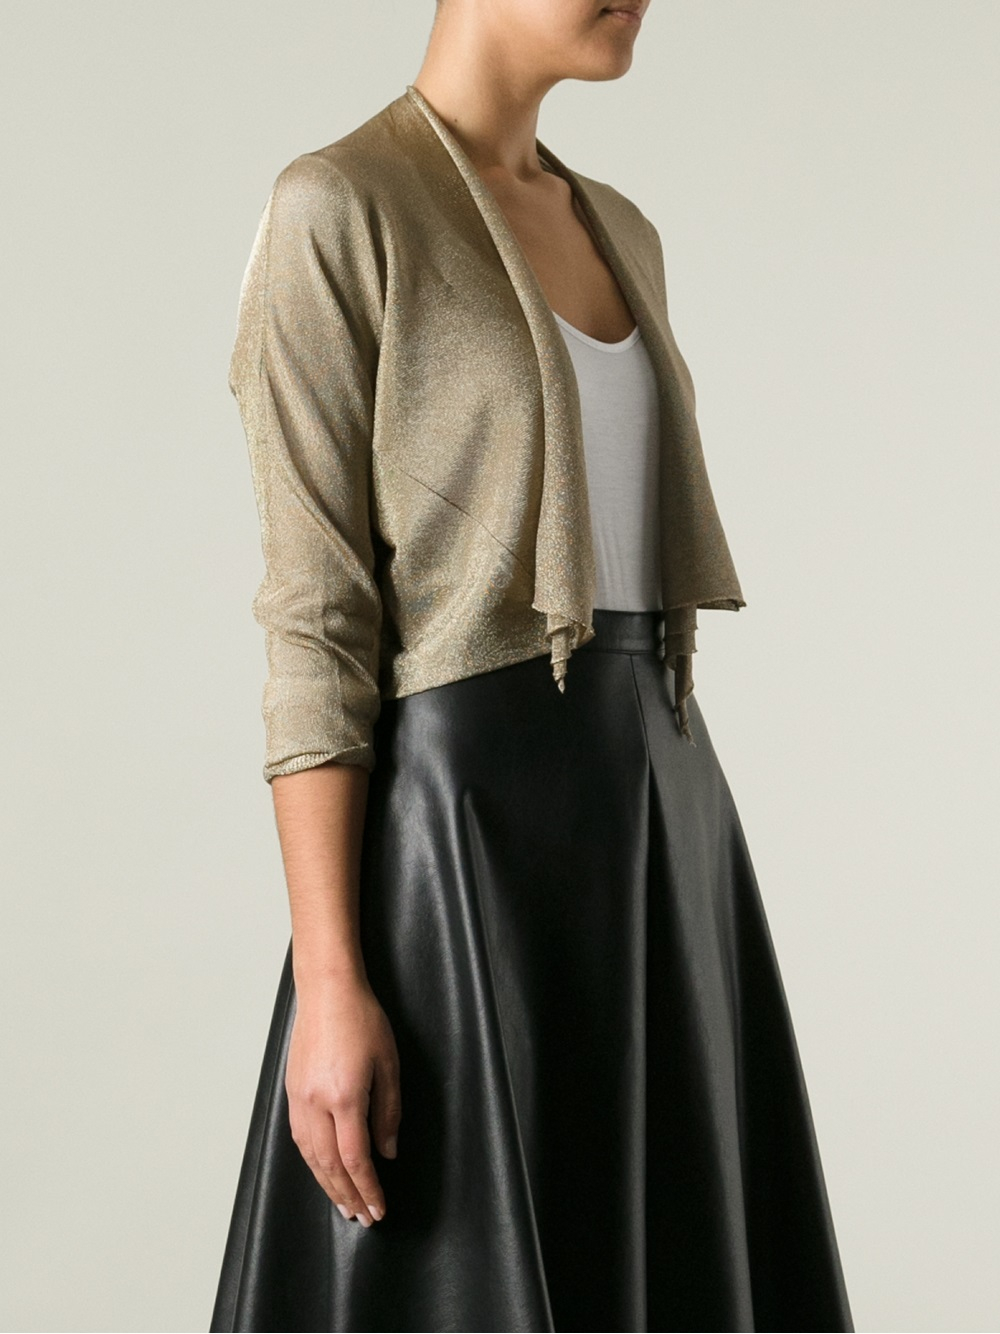 Twin set Open Front Cardigan in Natural | Lyst